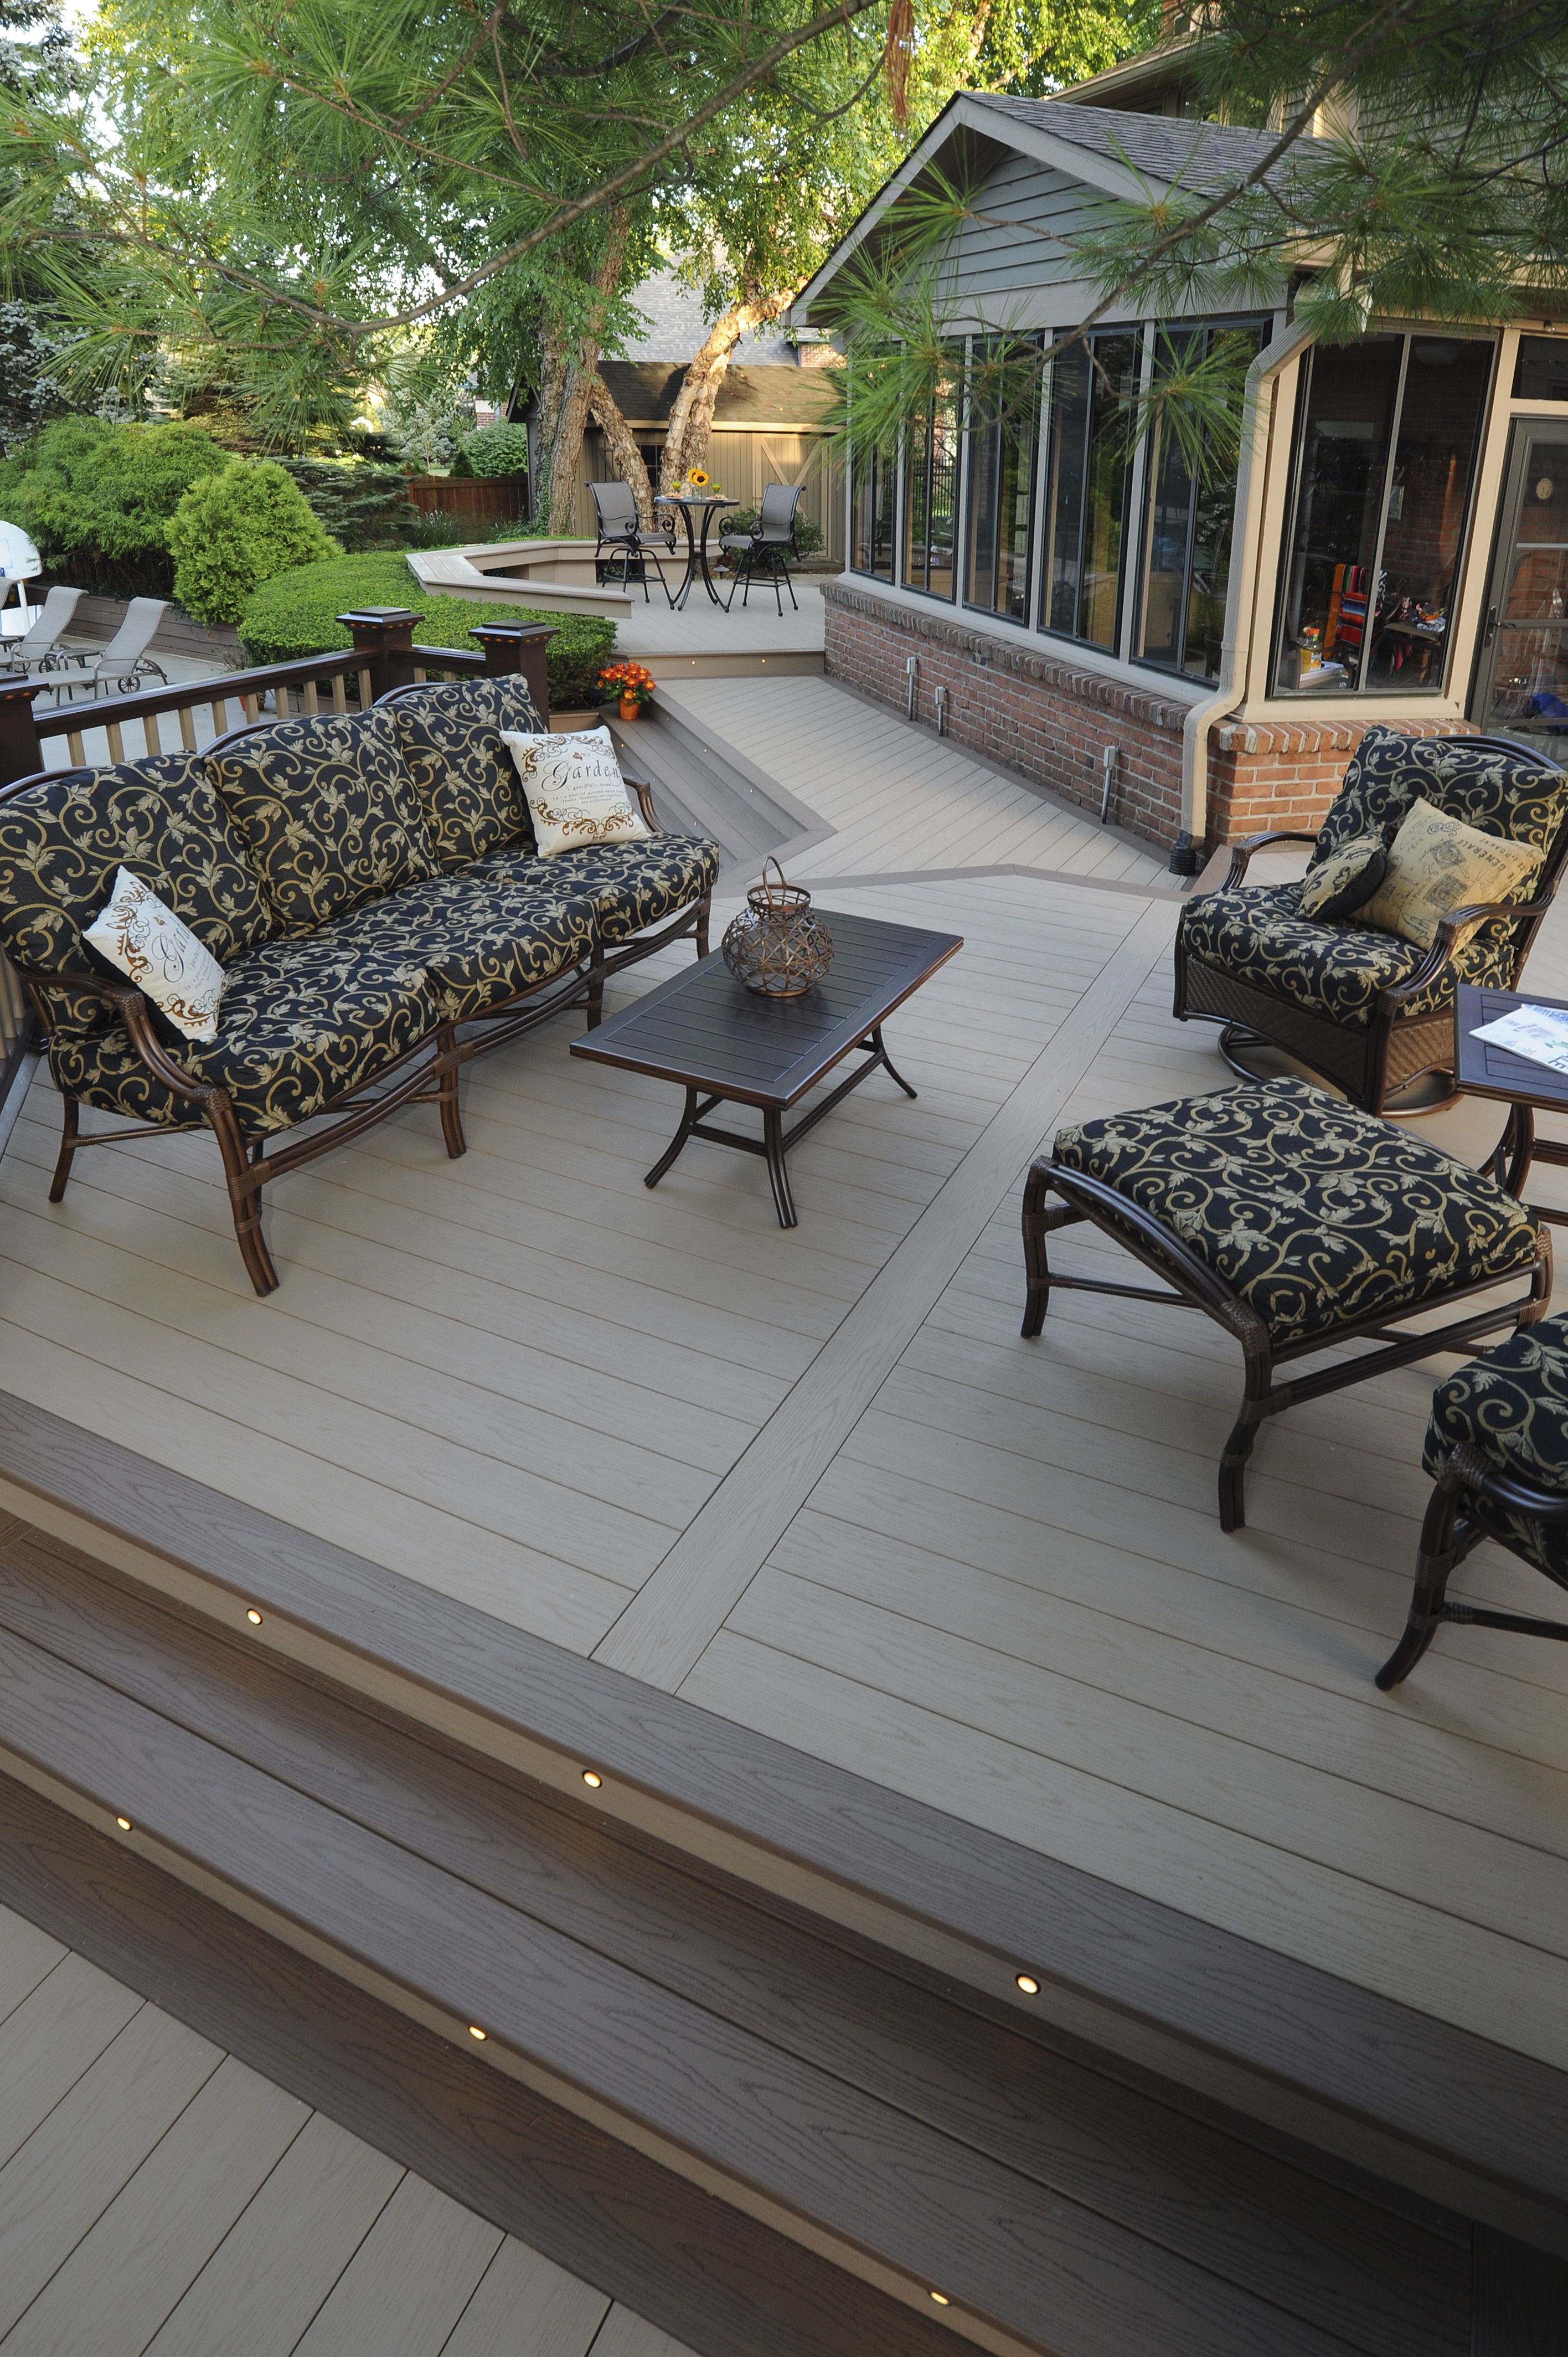 AZEK Decking Harvest Collection in Brownstone with Sedona